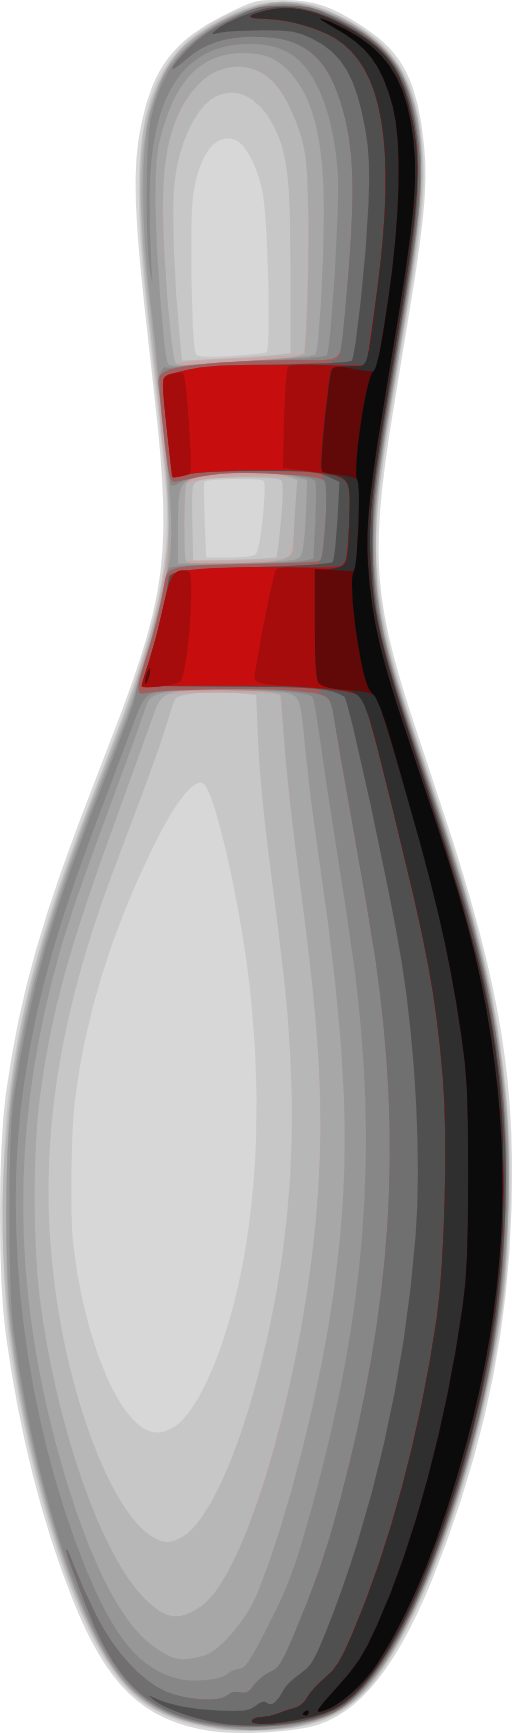 Bowling Pin Clipart I2clipart Royalty Free Public Domain Clipart